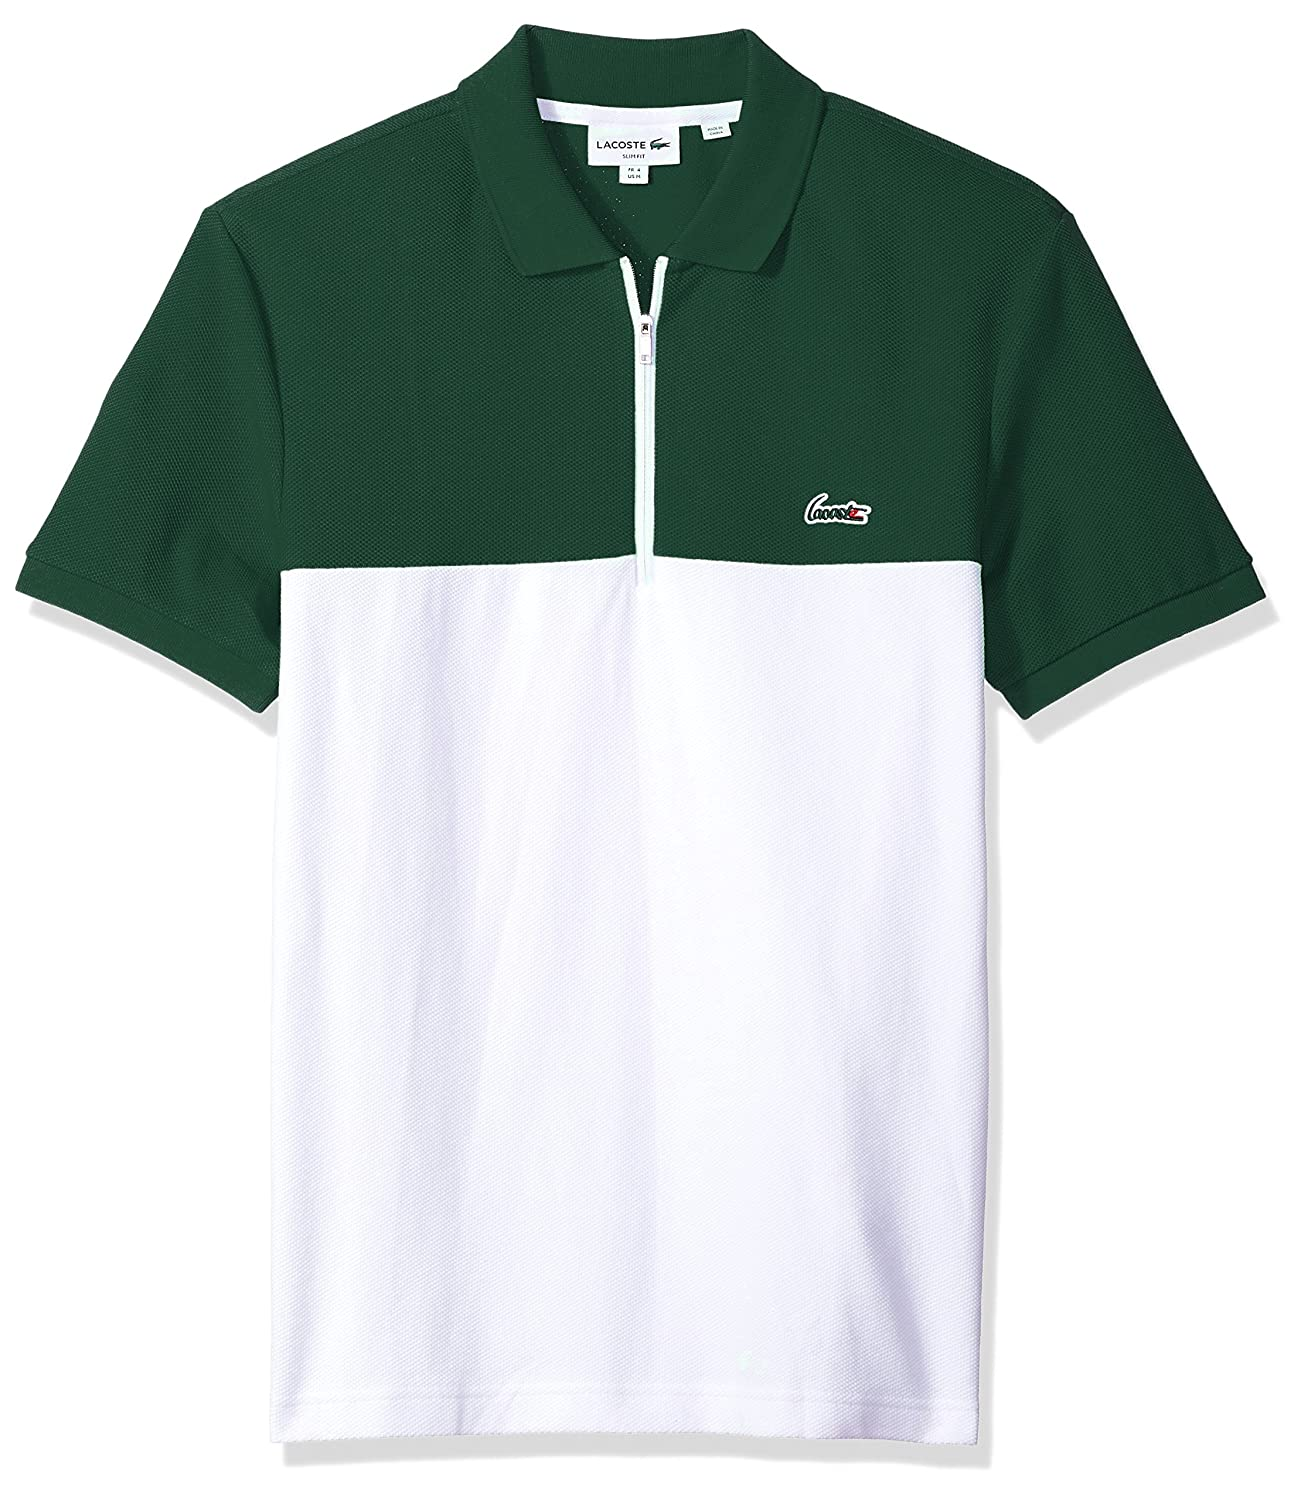 Mode Sports ShirtsTop Direct Depot Lacoste Polo CBoWexrd